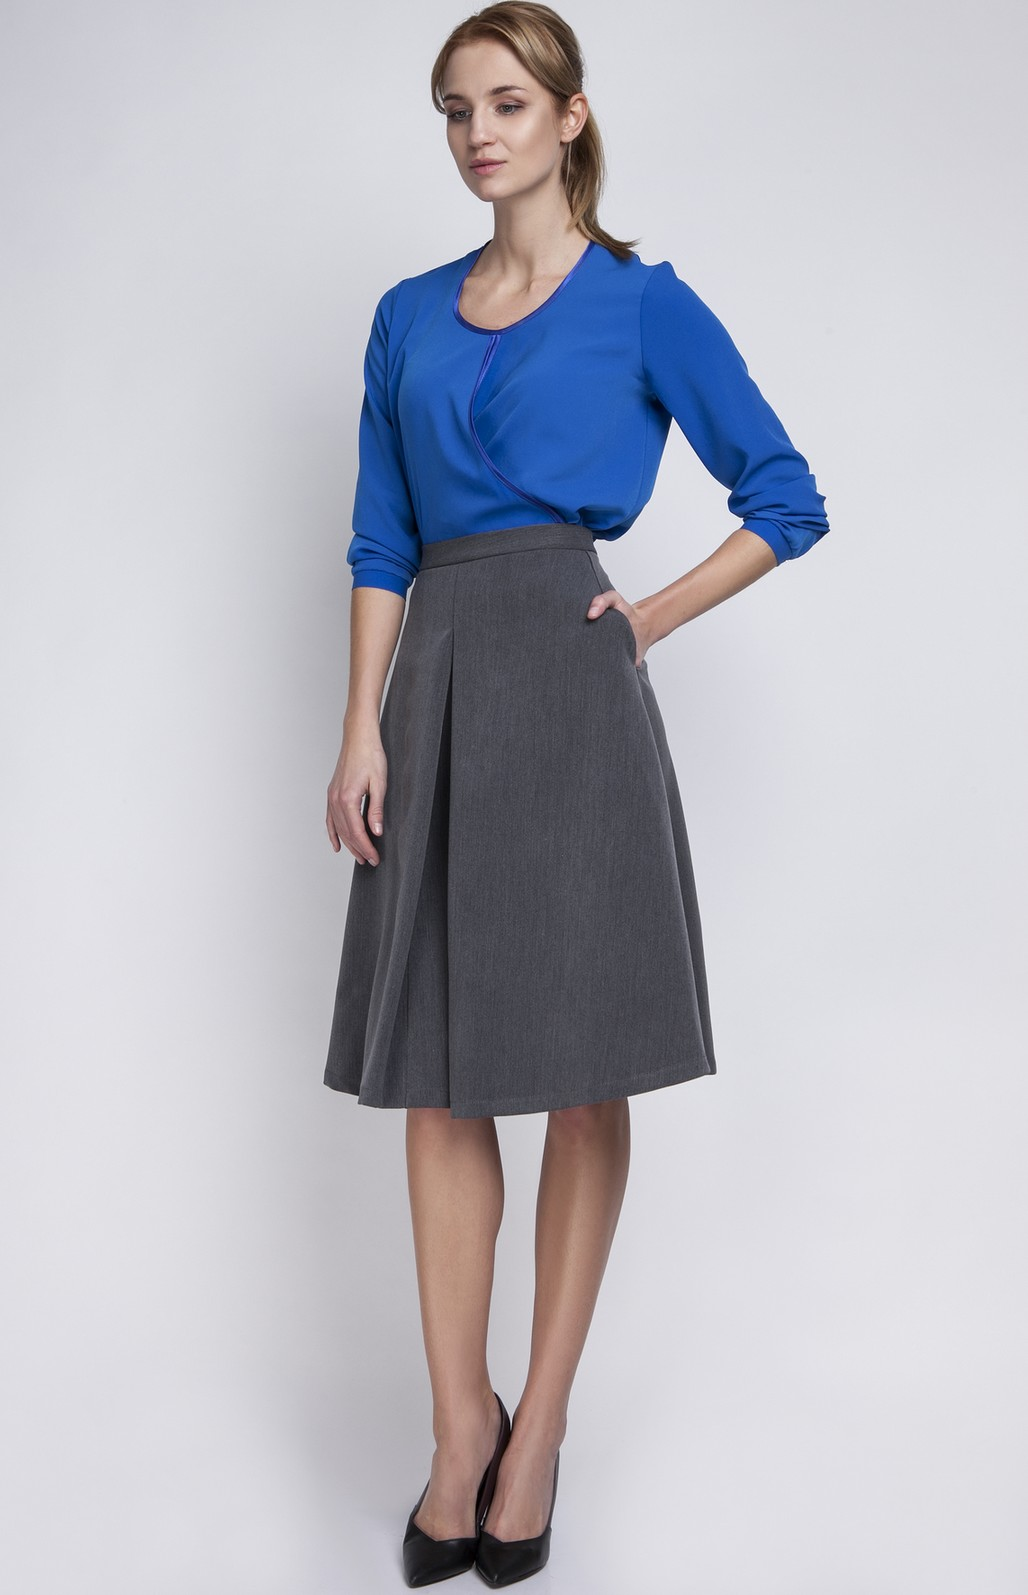 Galerry dress with flared skirt